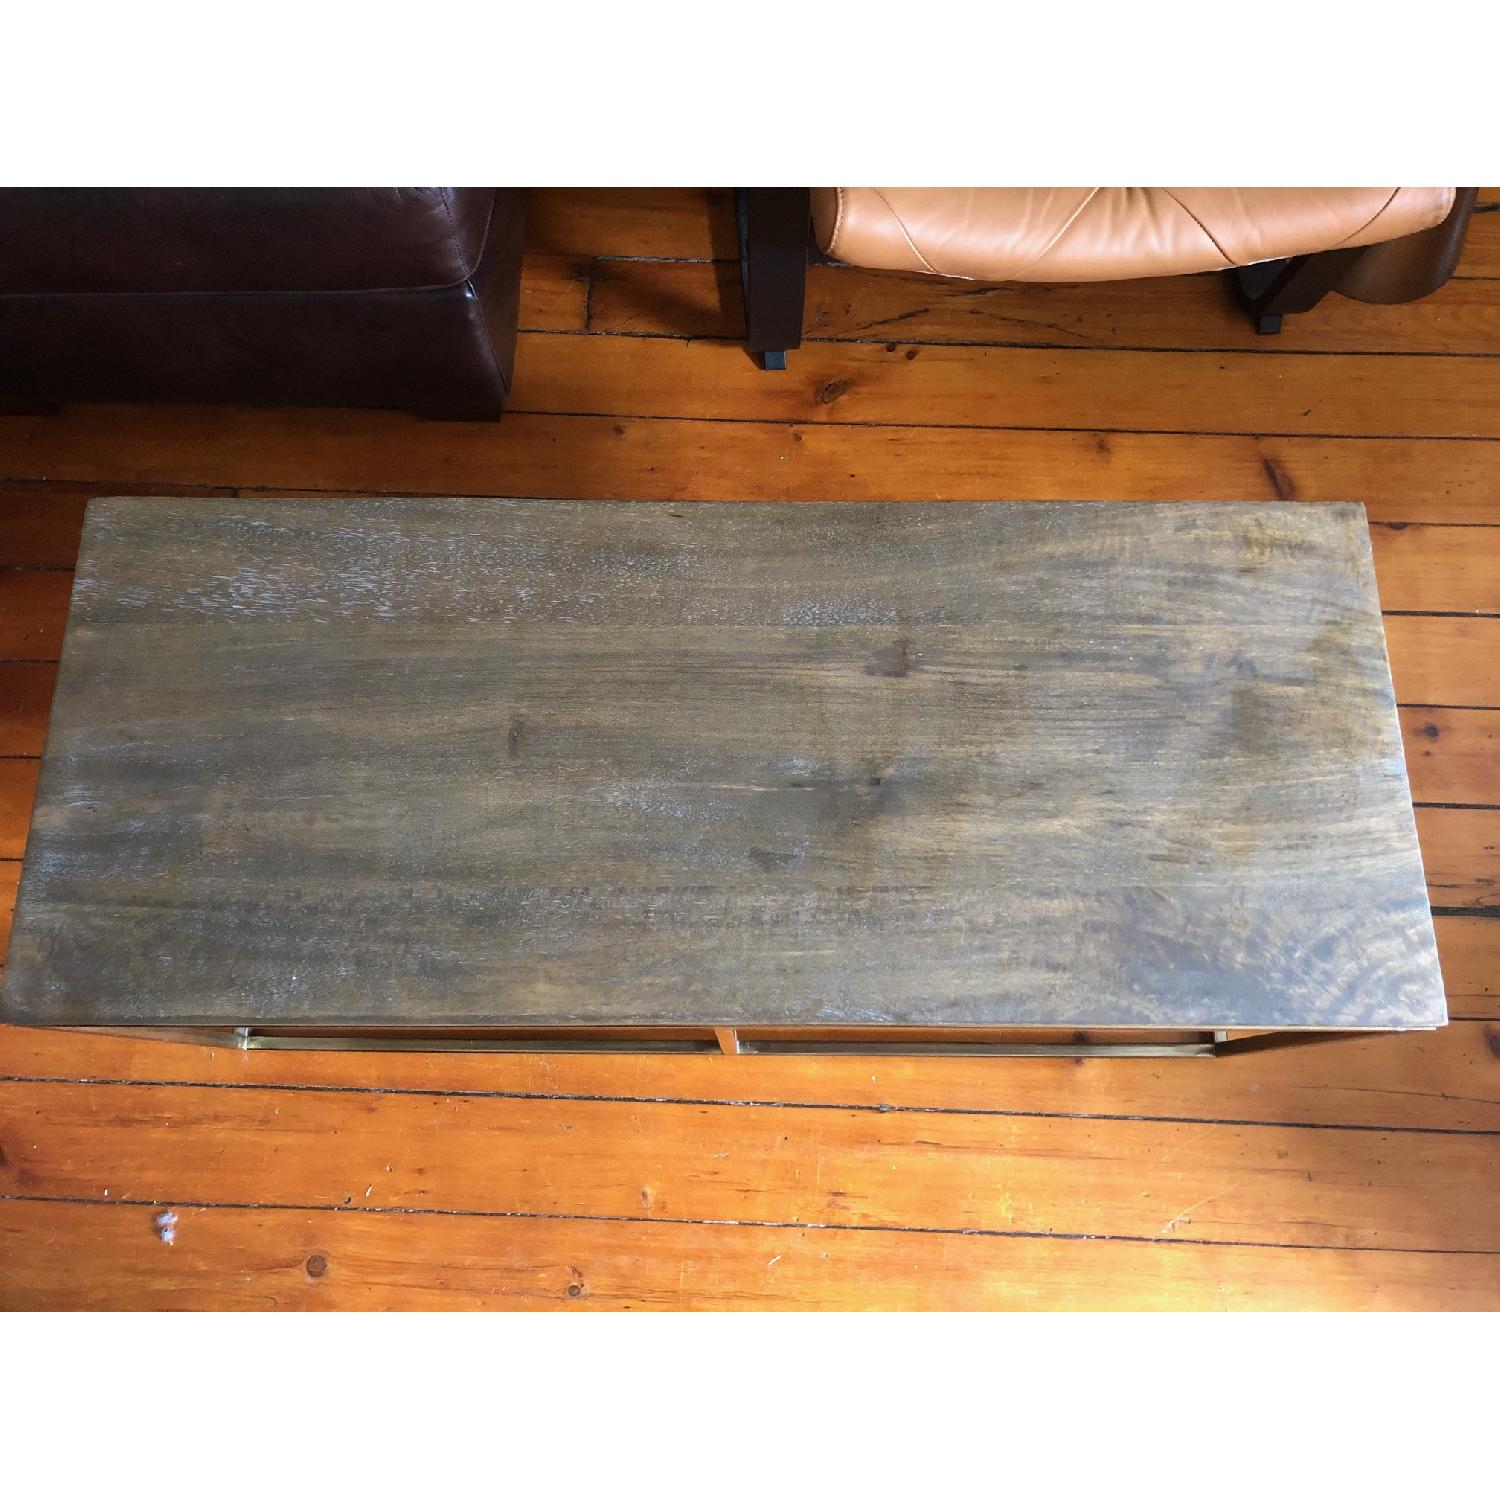 Pottery Barn Delaney Coffee Table Wood/French Grey - image-2